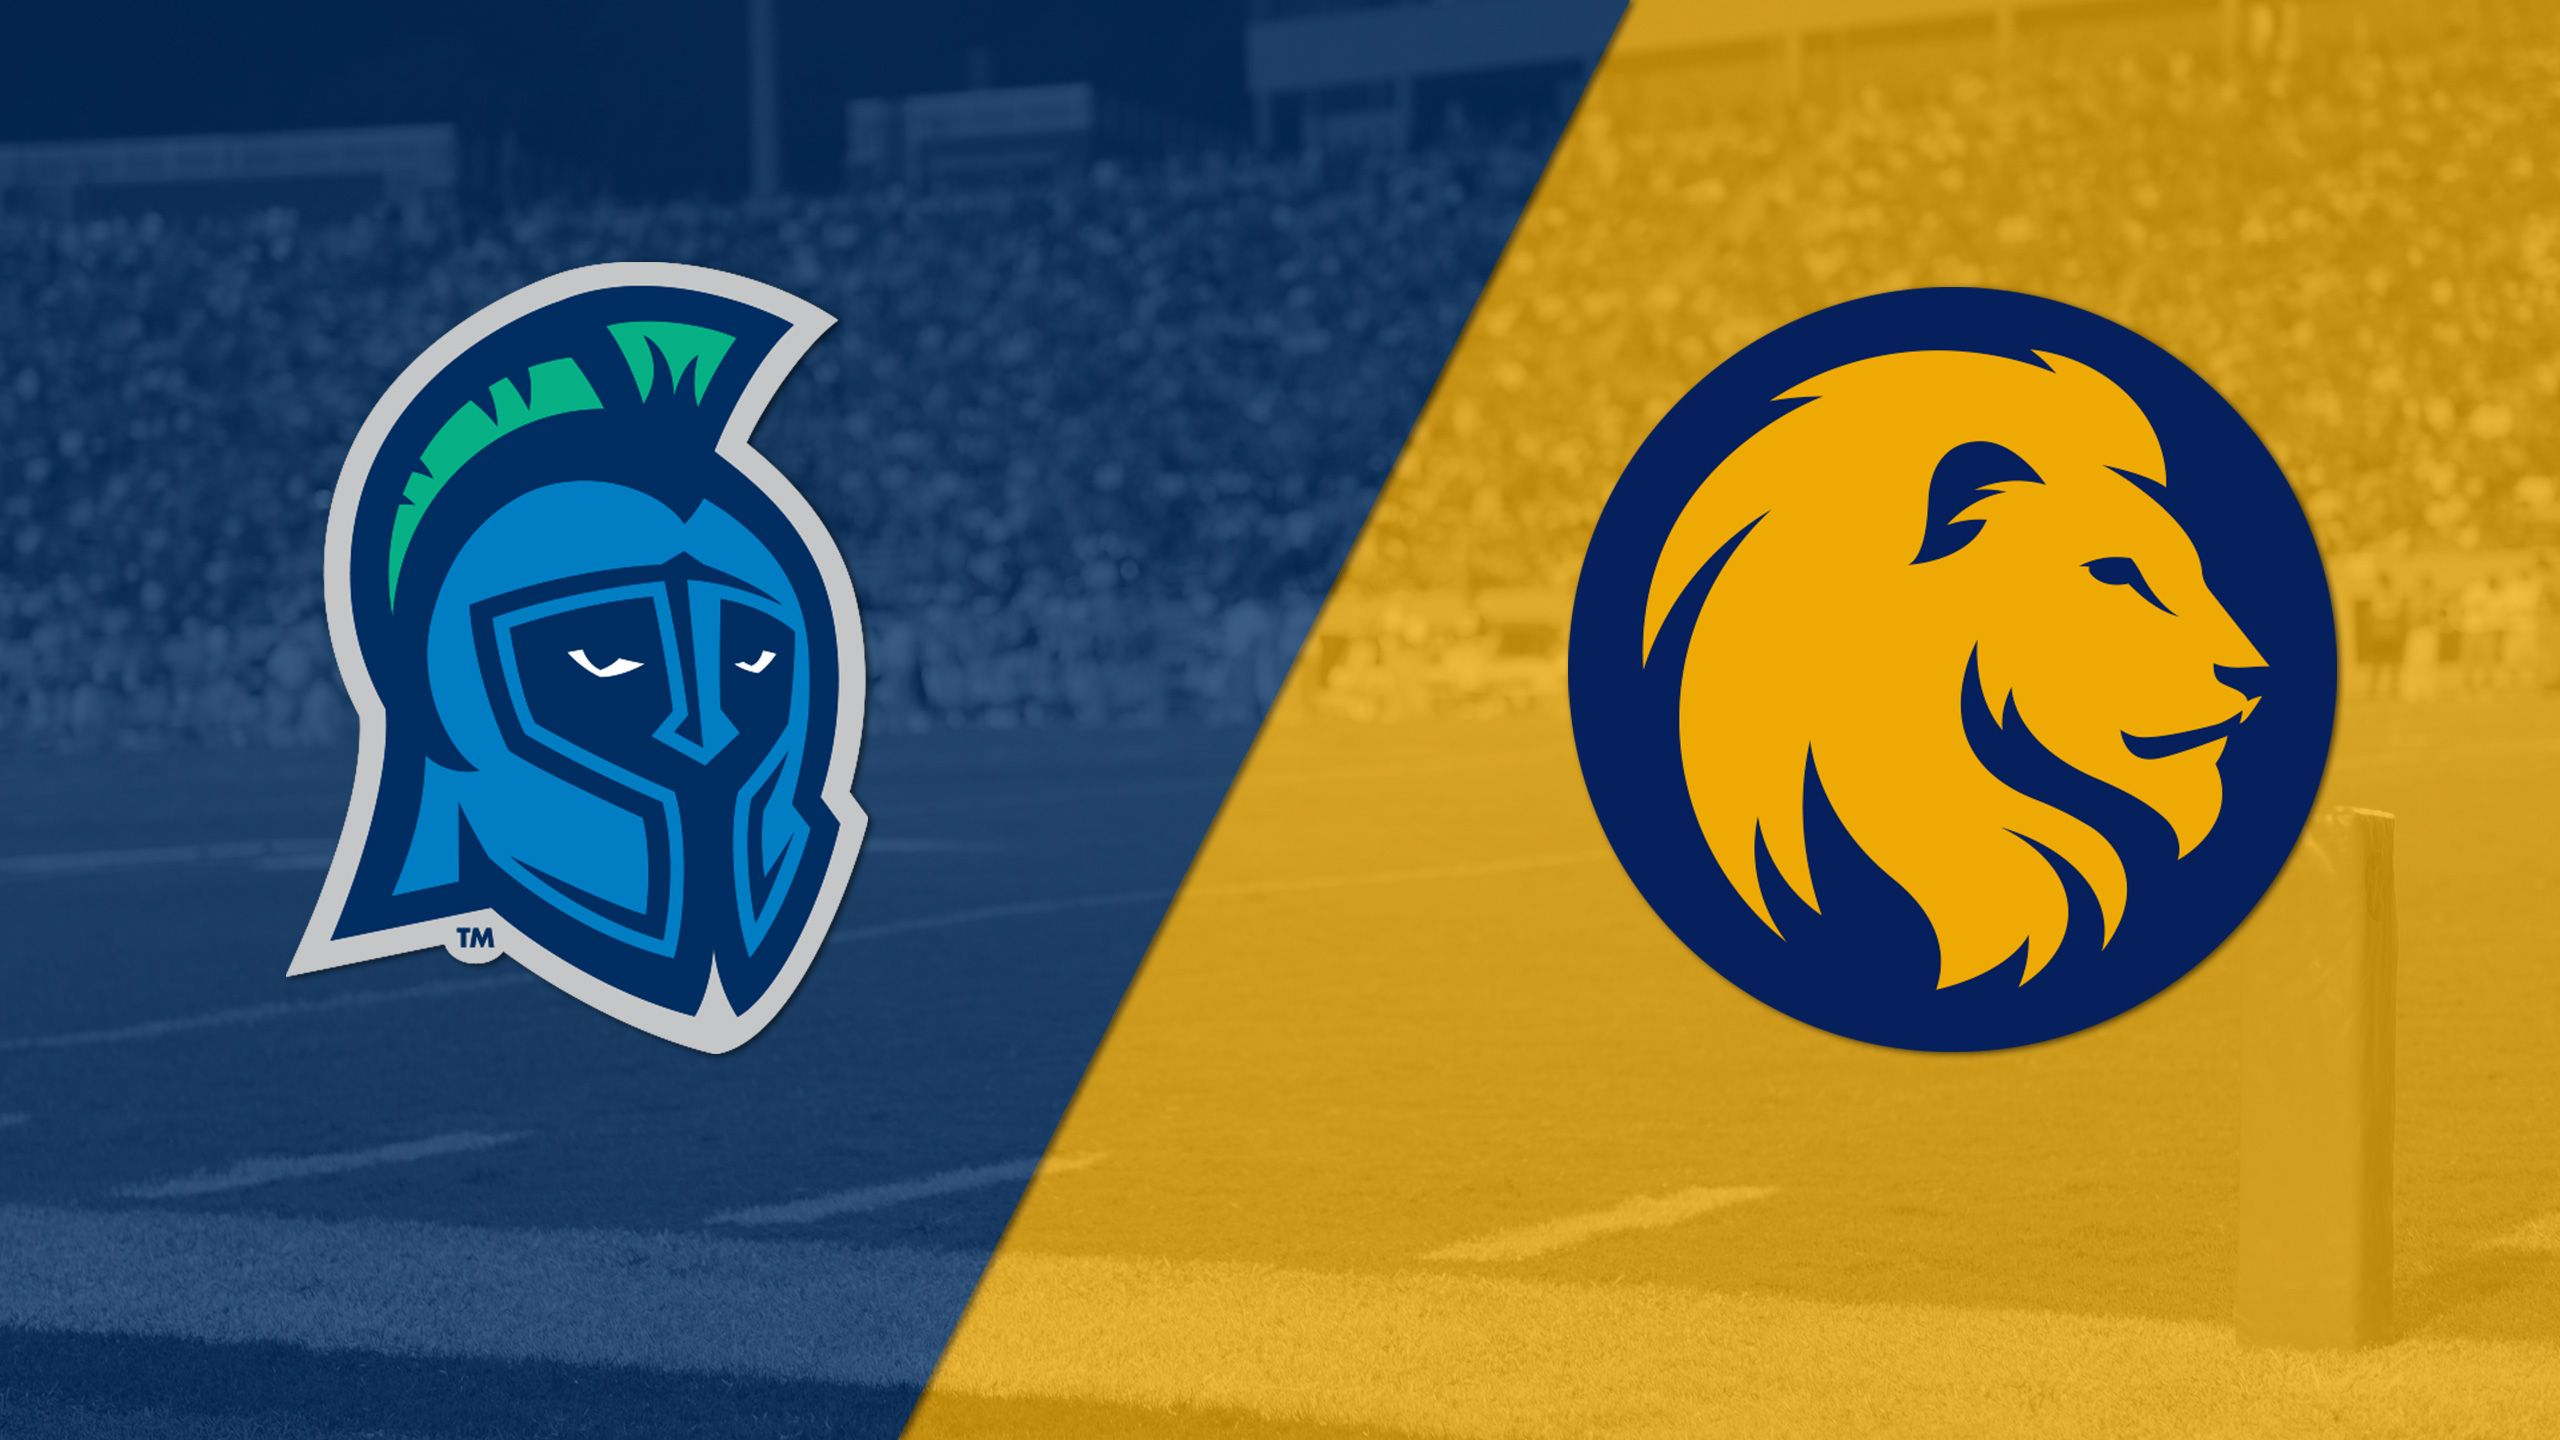 West Florida vs. Texas A&M Commerce (Championship) (NCAA Division II Football Championship)